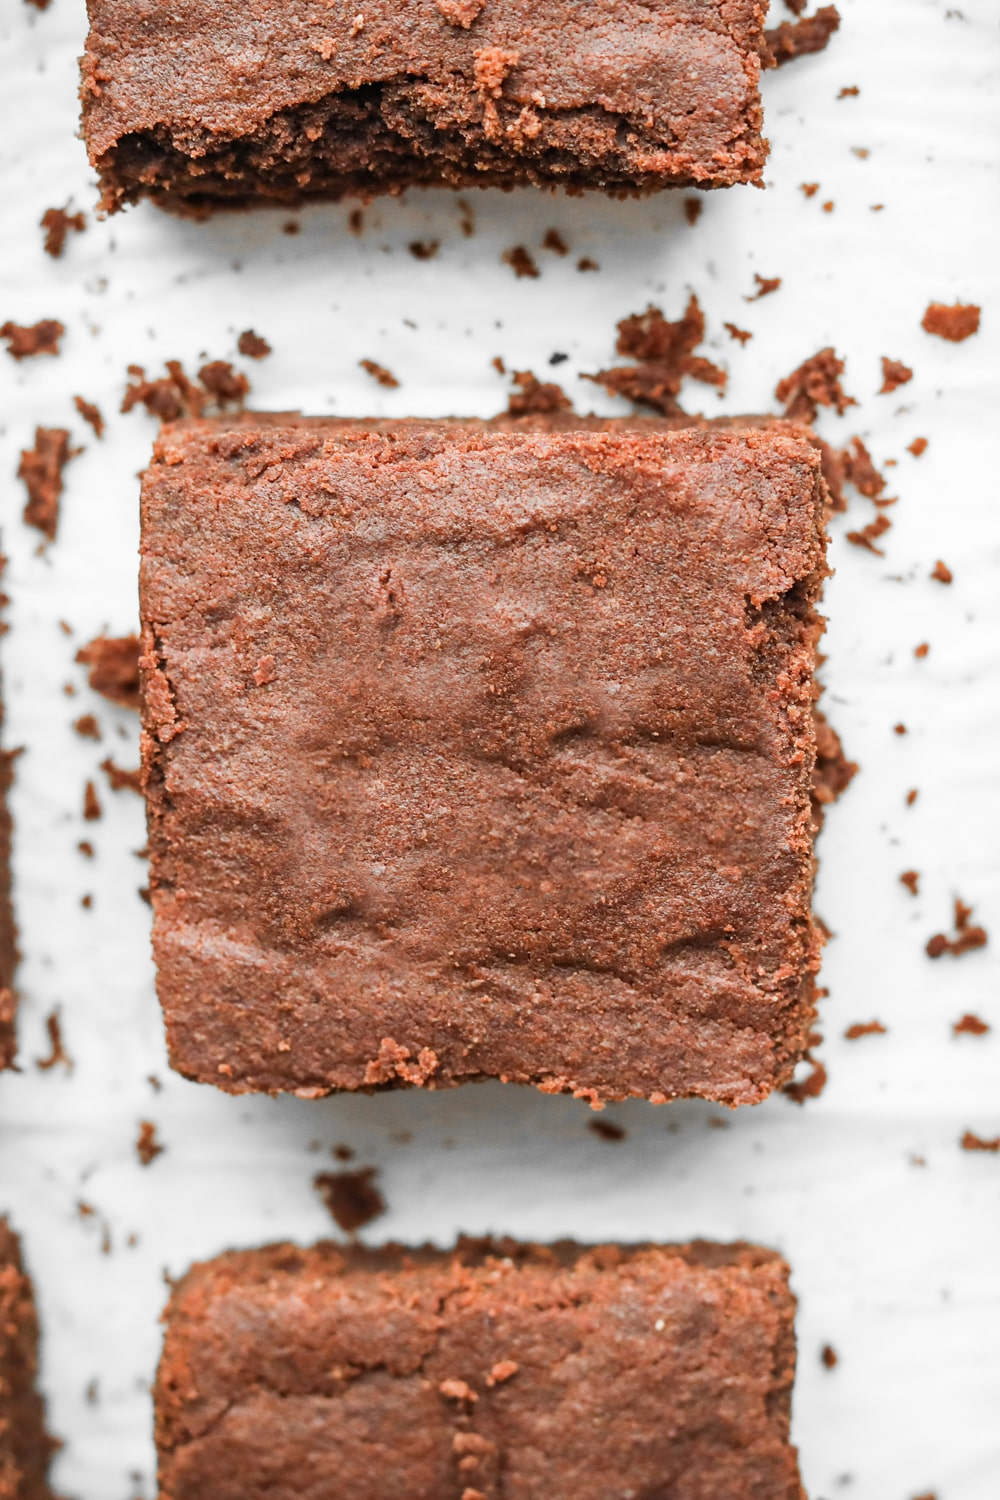 Keto brownies made with coconut flour cut into square laying on parchment paper.